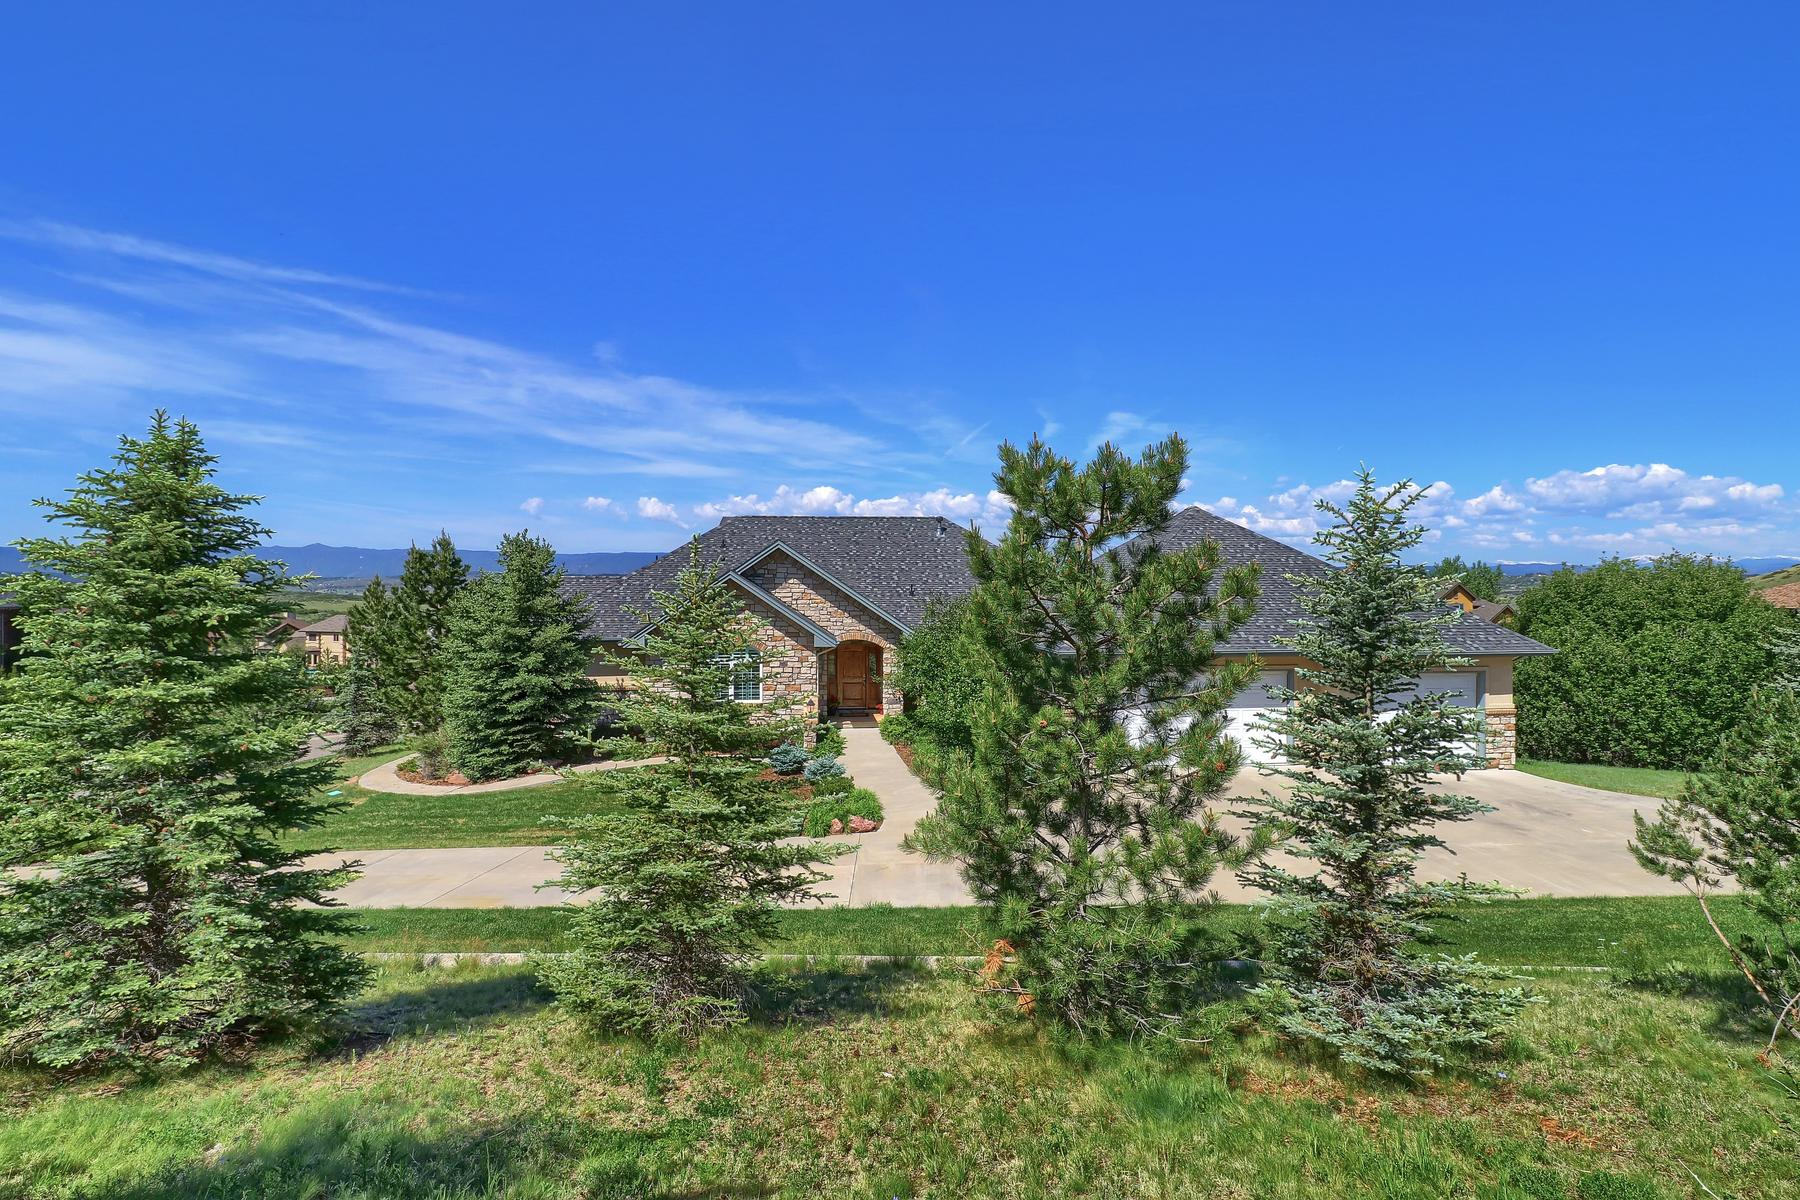 Single Family Home for Active at Captivatiing custom ranch style home 1361 Chalk Hill Pl Castle Rock, Colorado 80104 United States